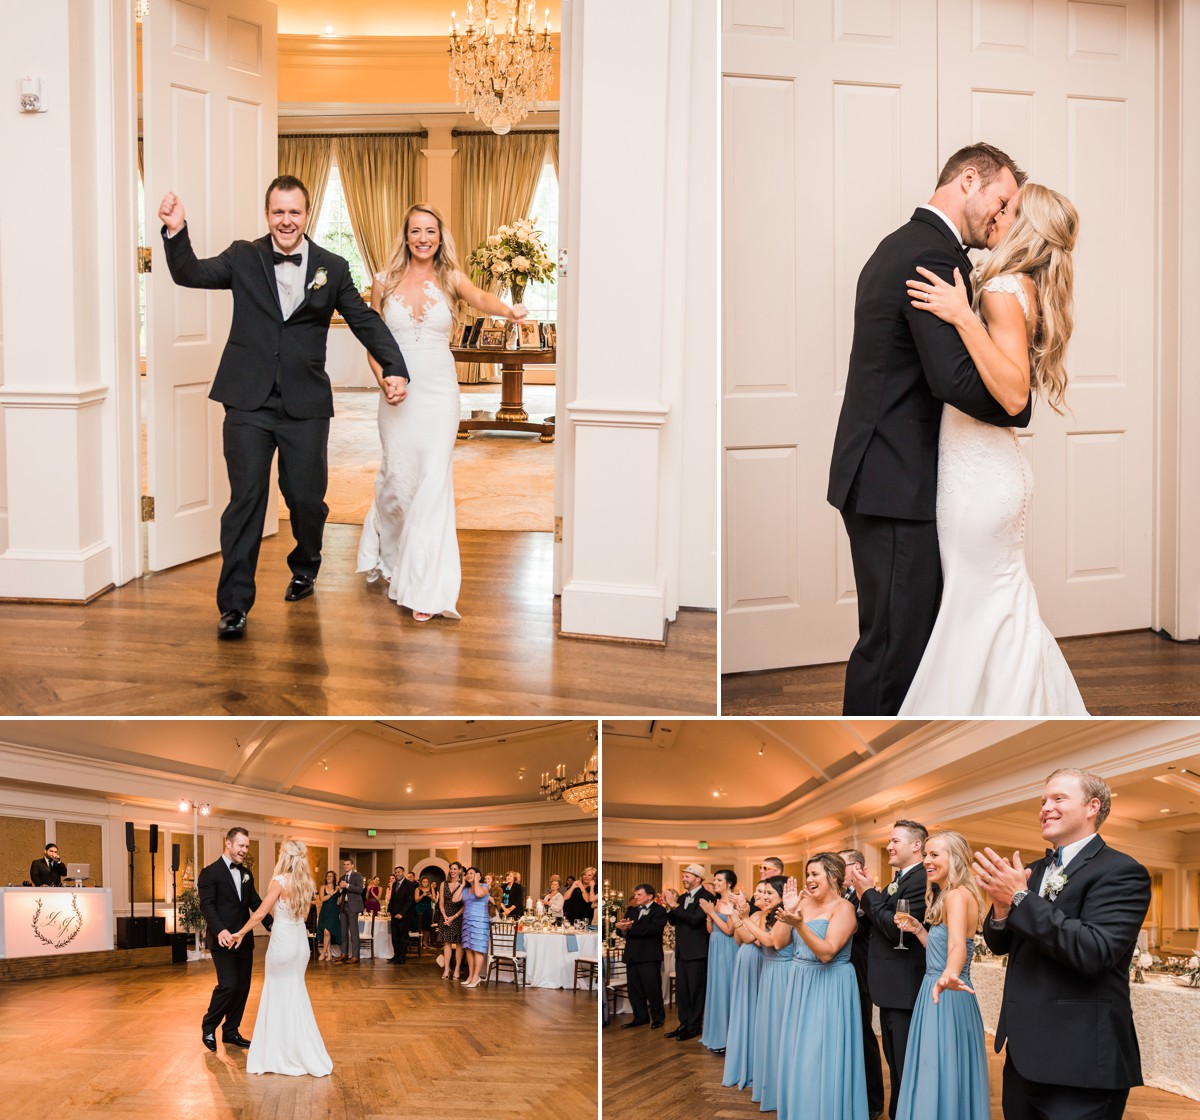 Laura & Jared Wedding Photos at River Oaks Country Club